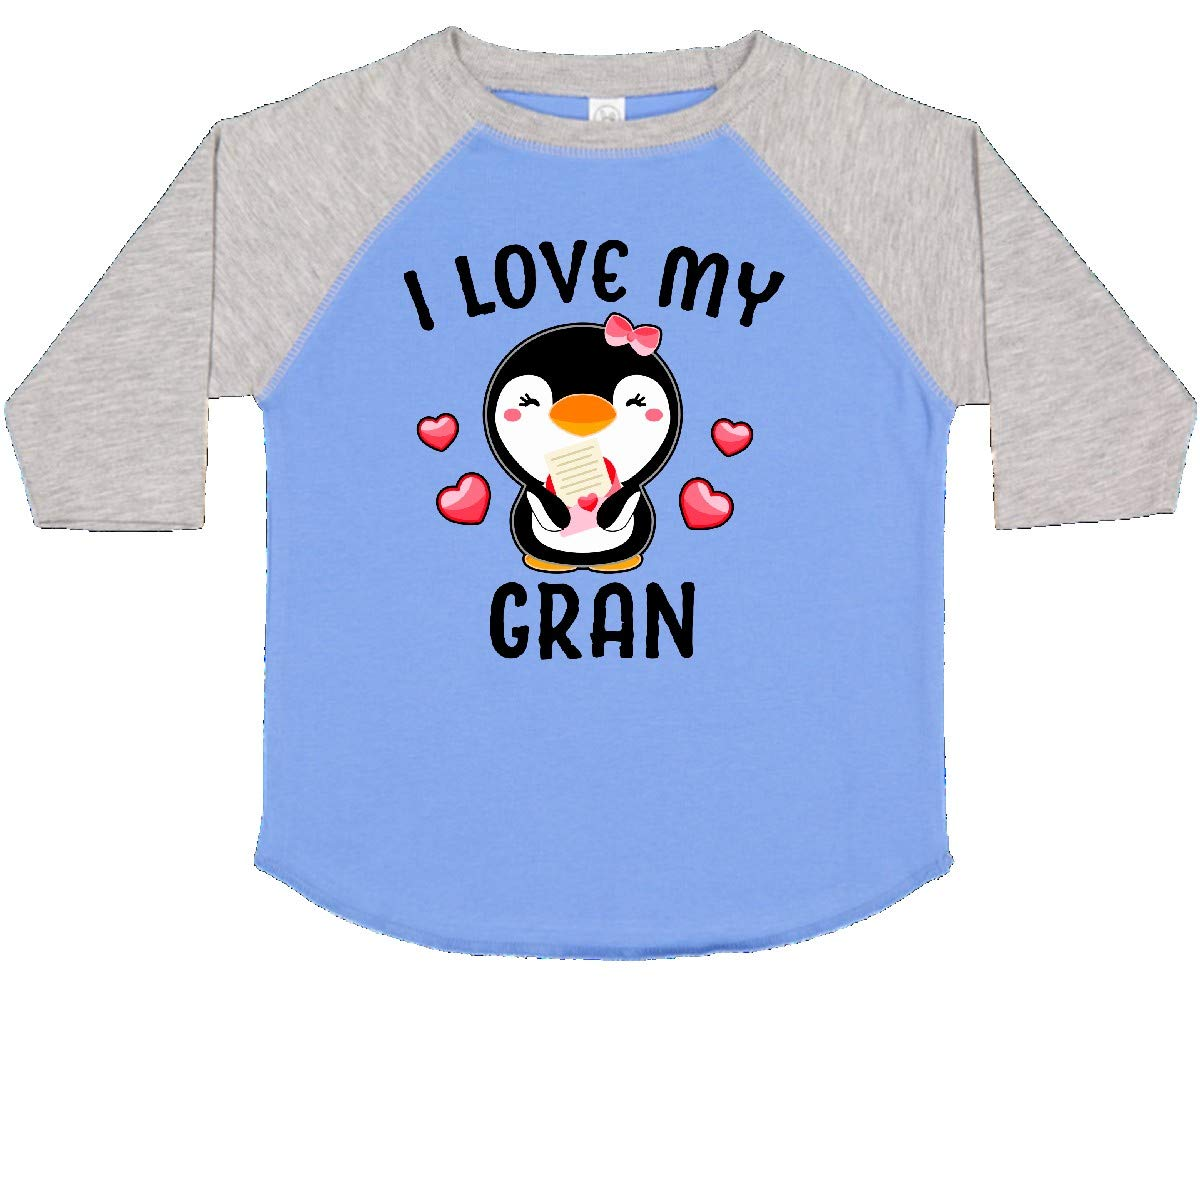 inktastic I Love My Gran with Cute Penguin and Hearts Toddler T-Shirt